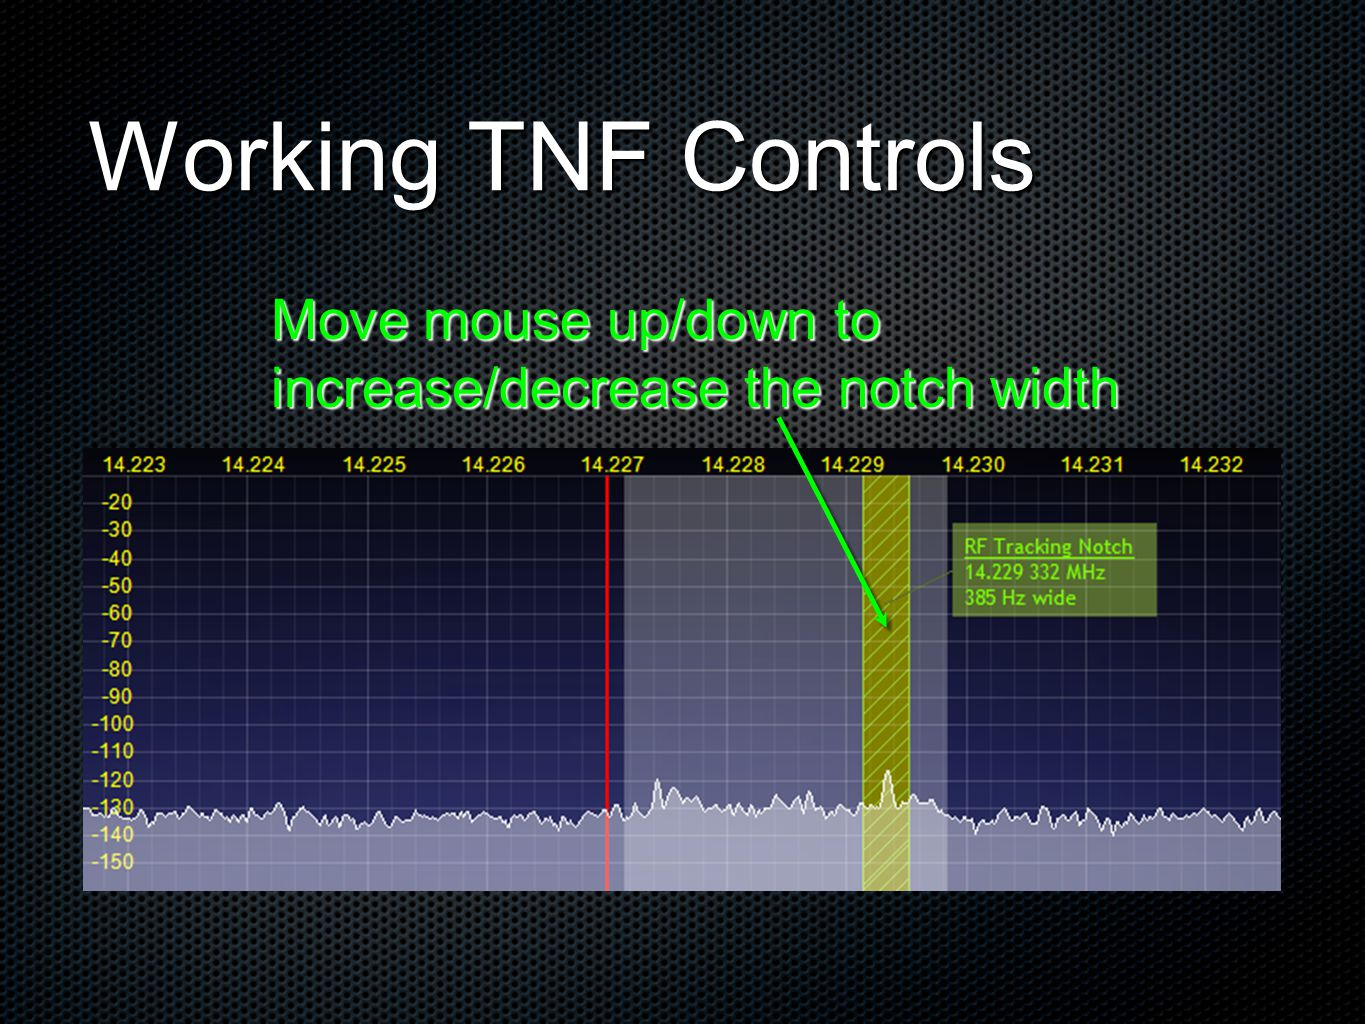 Working TNF Controls Move mouse up/down to increase/decrease the notch width